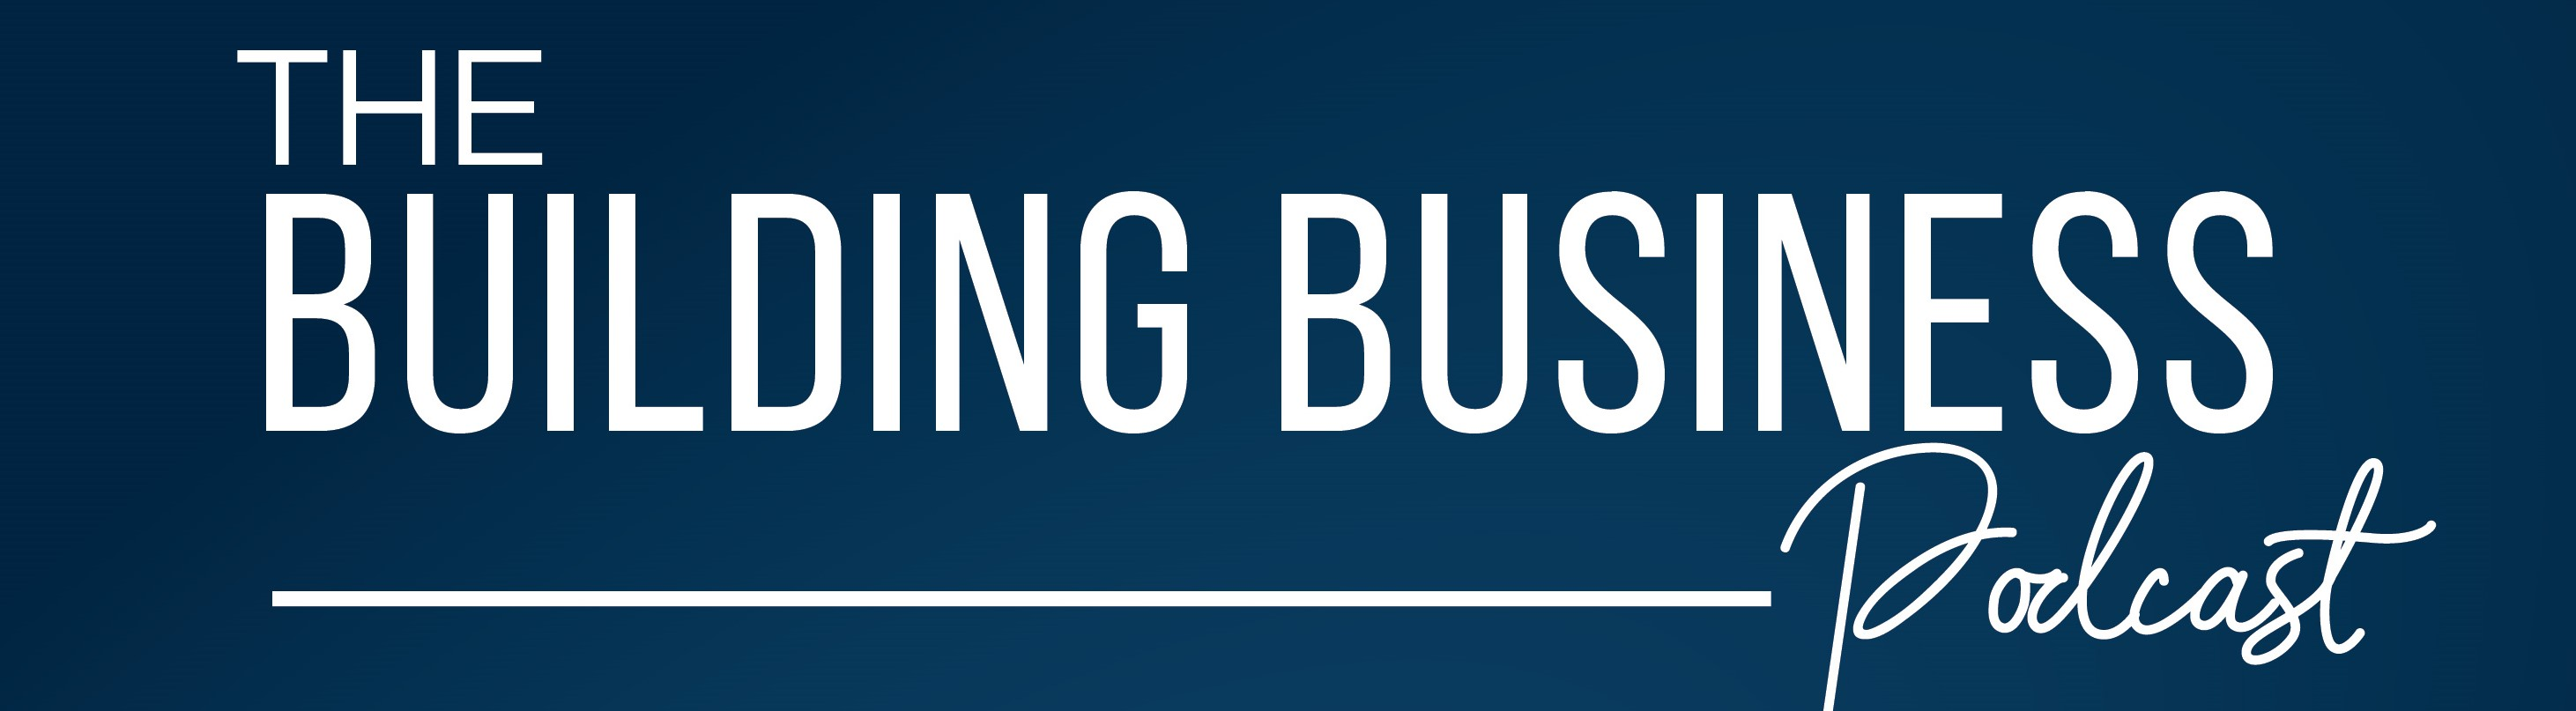 The Building Business Podcast